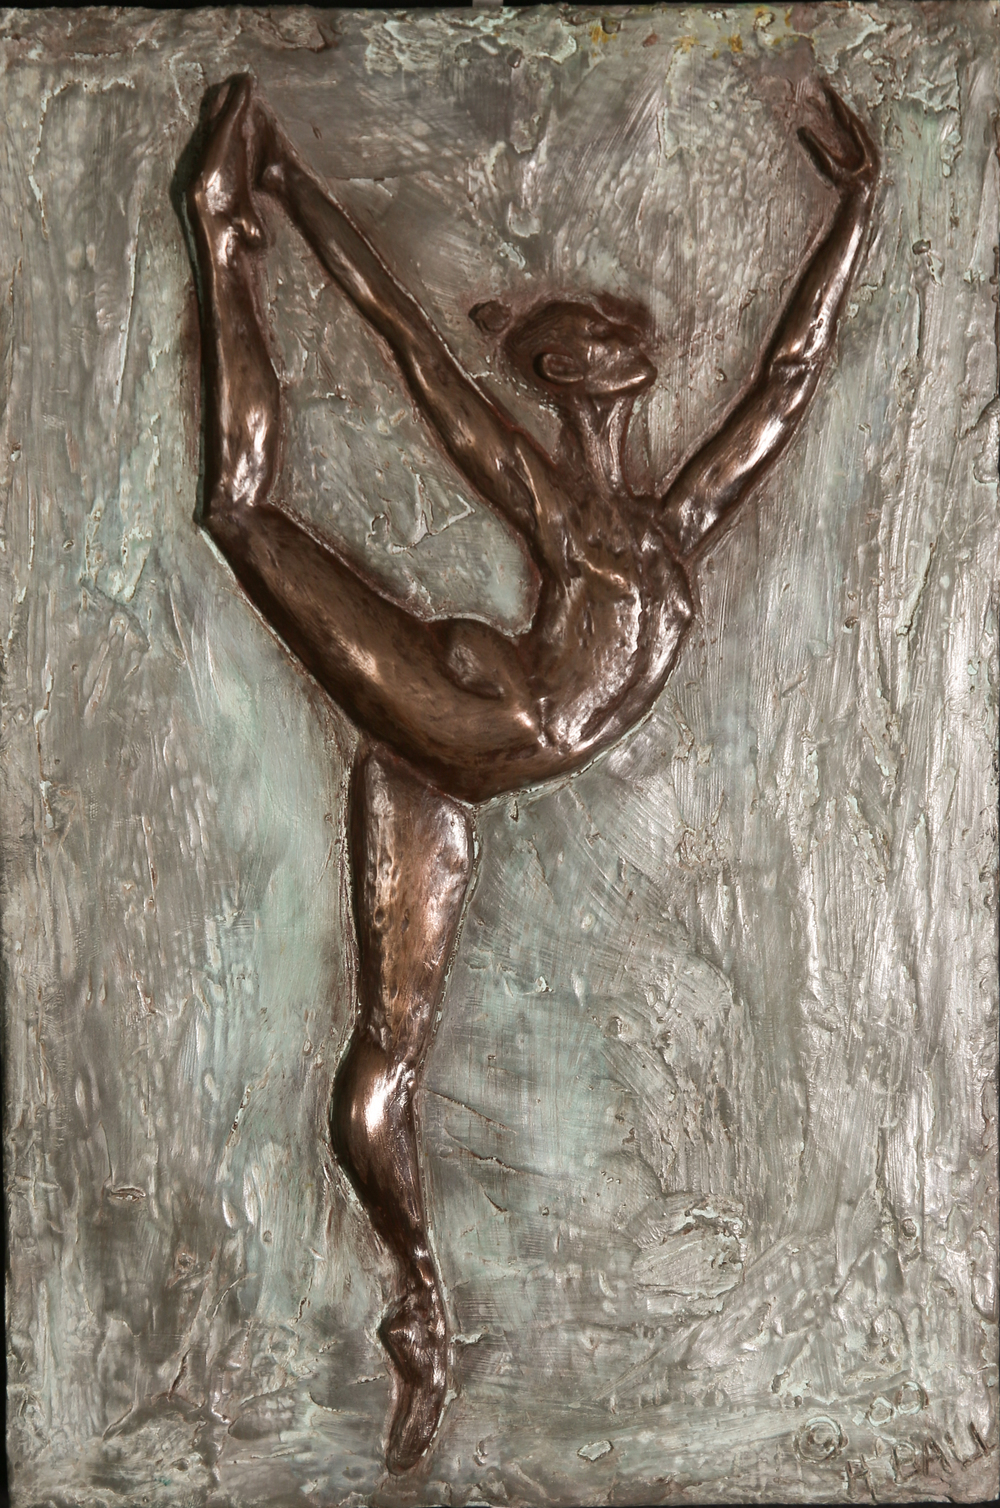 Arabesque (2000) FMG Bronze, Edition: 30, 11.5x8x.5in. $1,000